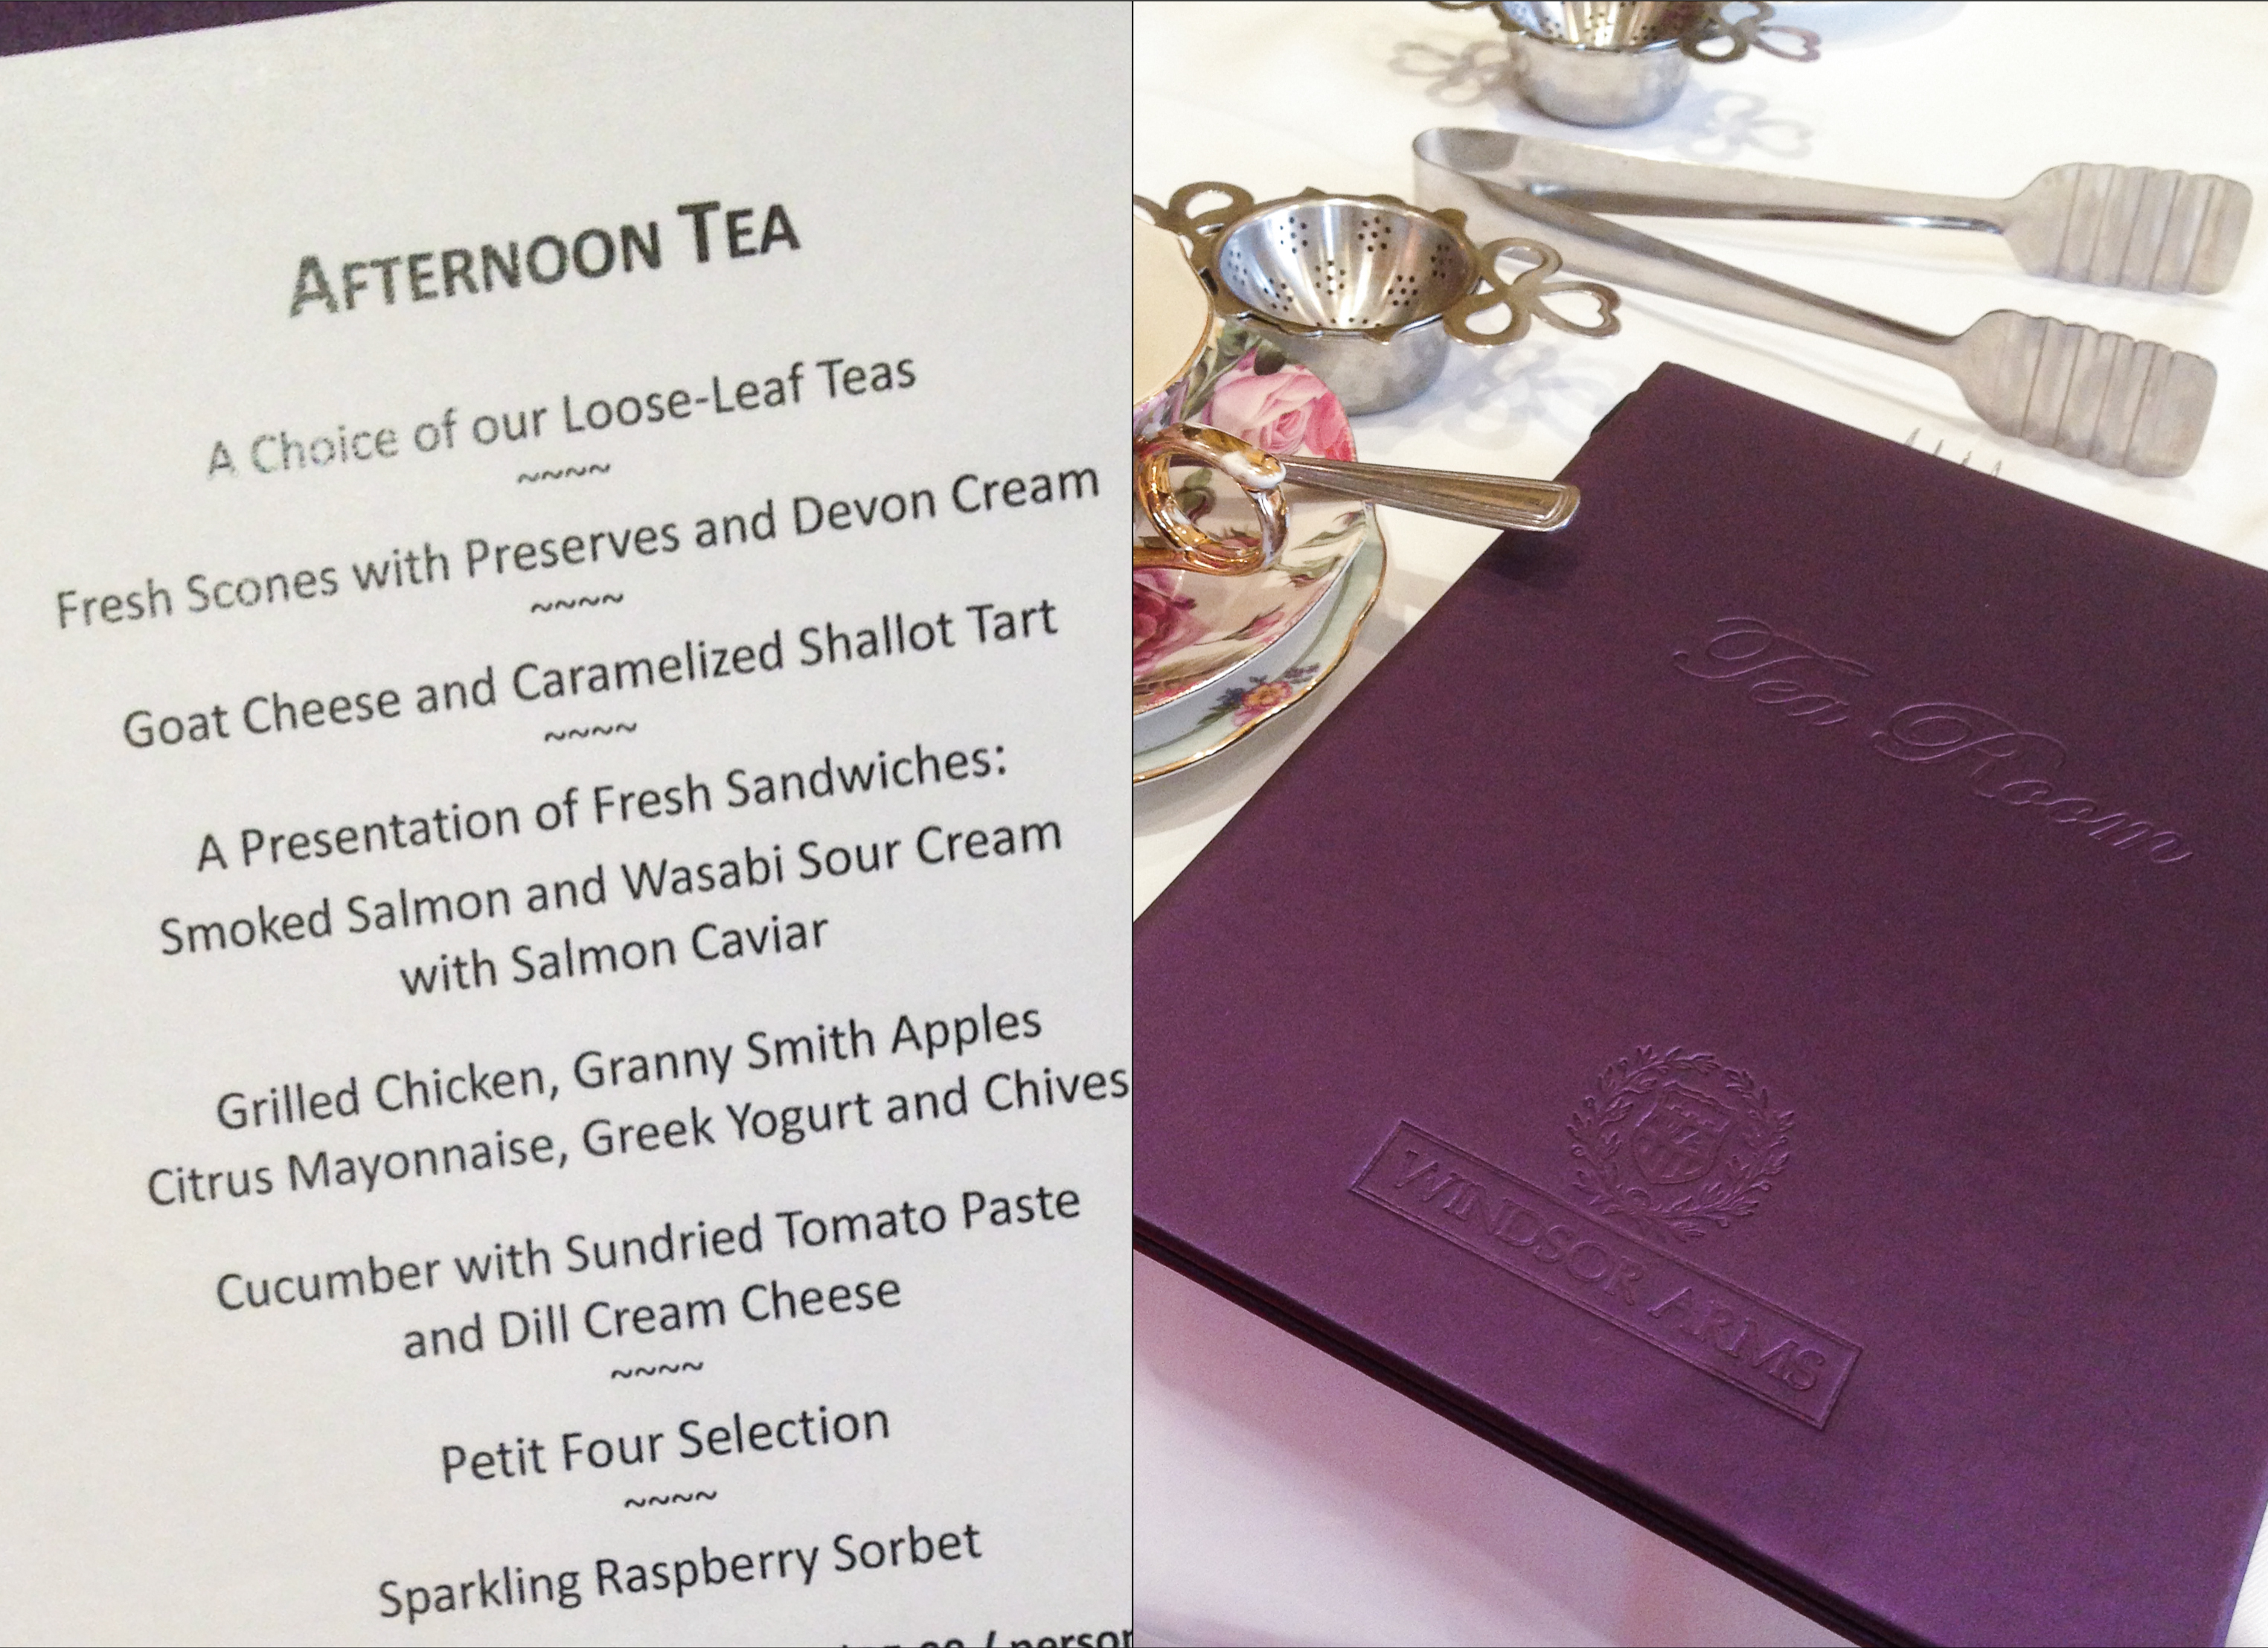 A set menu for afternoon tea at the Windsor Arms.